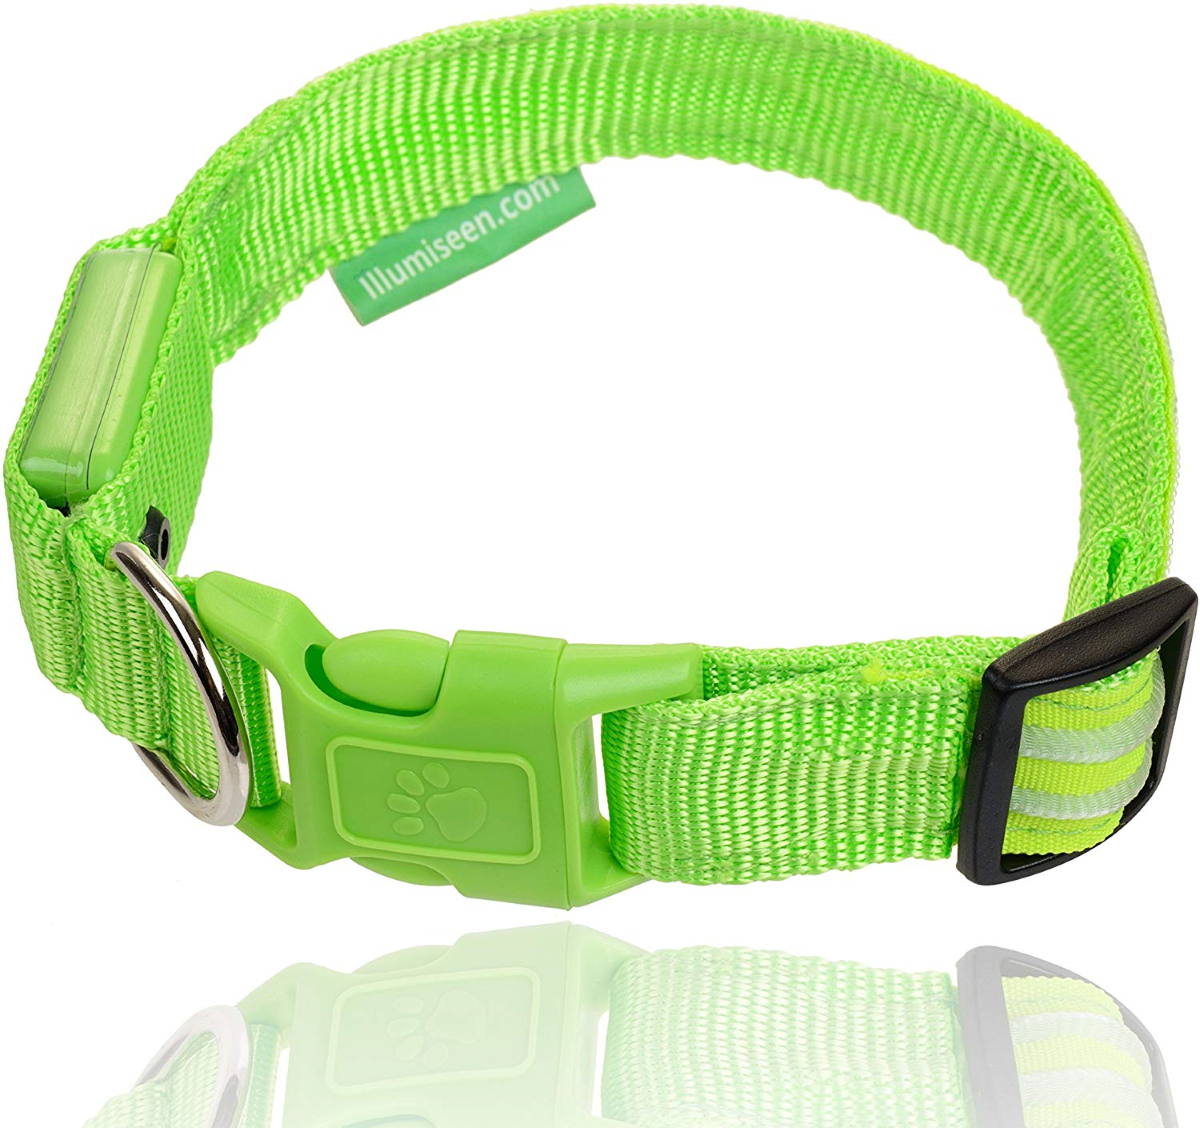 Dog Collar's Convenient & Easy-to-use User-Friendly Clips